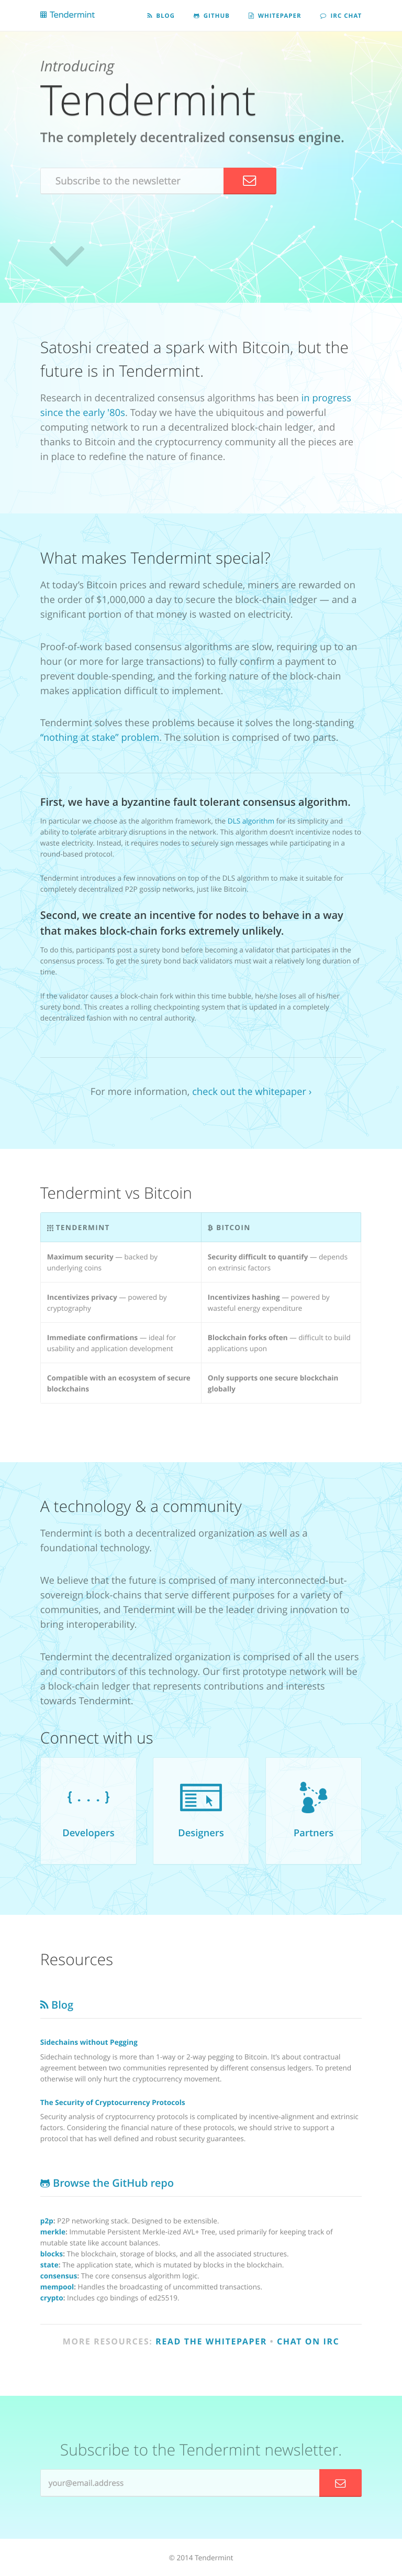 Tendermint | Landing Page, Tablet